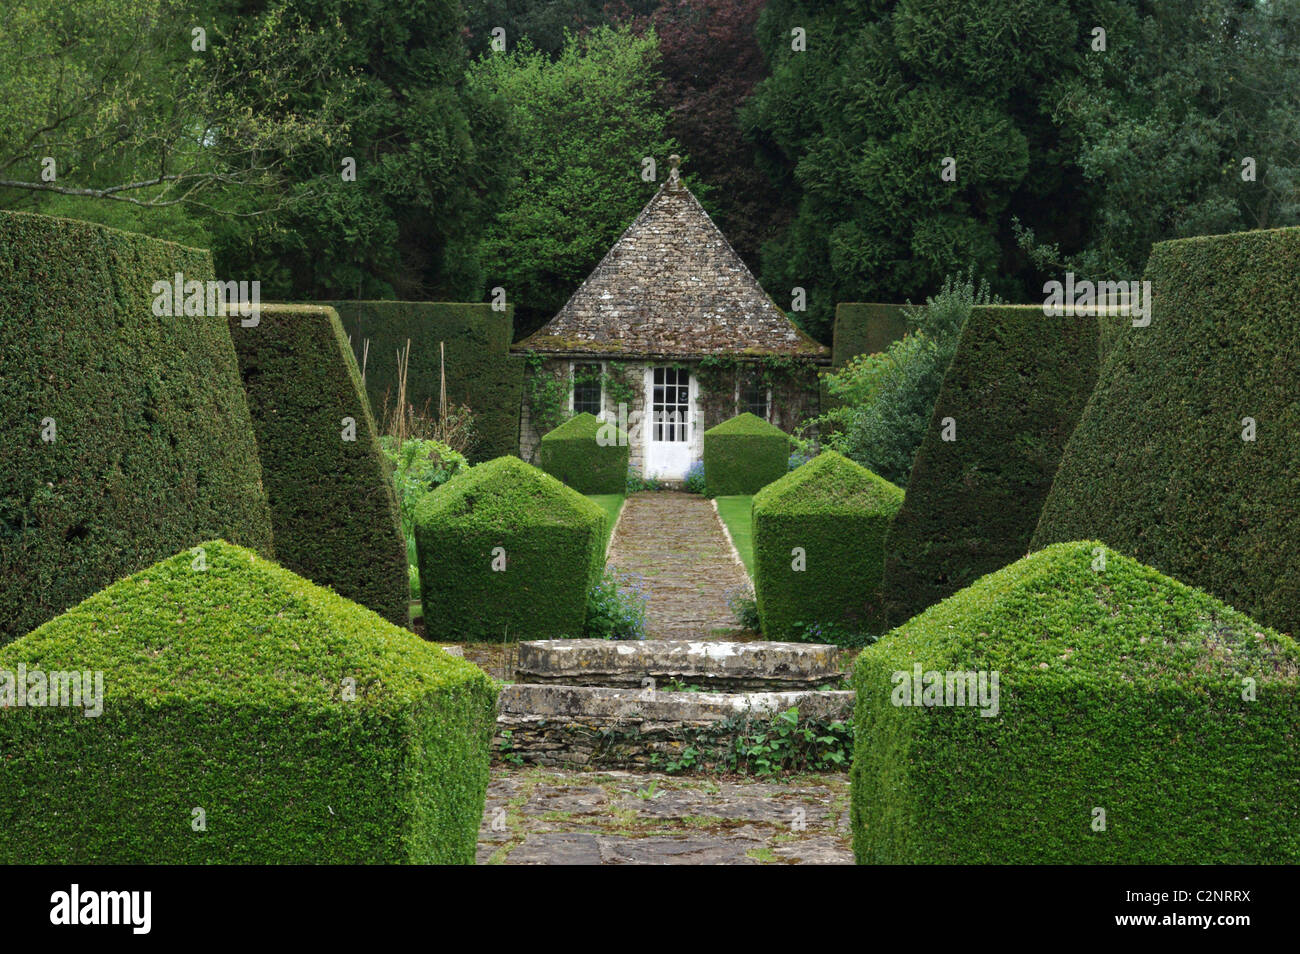 A formal garden at Rodmarton Manor, an Arts and Crafts house near Cirencester, Gloucestershire, UK - Stock Image